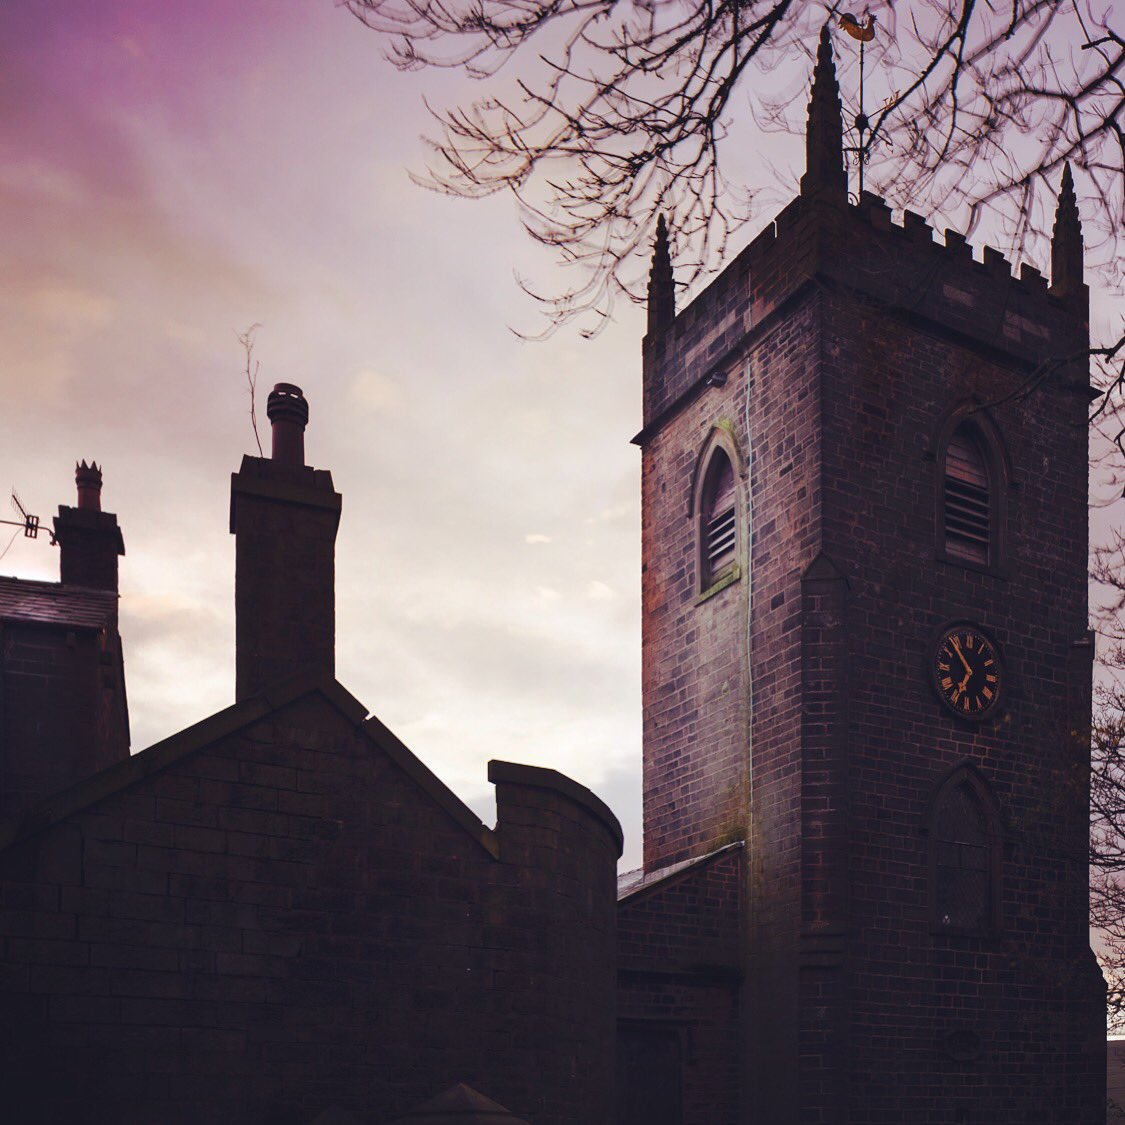 Today, I'm back in Newchurch filming a peal of bells which will last for 3 hours - in commemoration of a peal rung a hundred years ago to this day at St. Nicholas - 1 of only 7 churches with enough muster to do so on Armistice or the day after https://t.co/A2dqQ14eKu